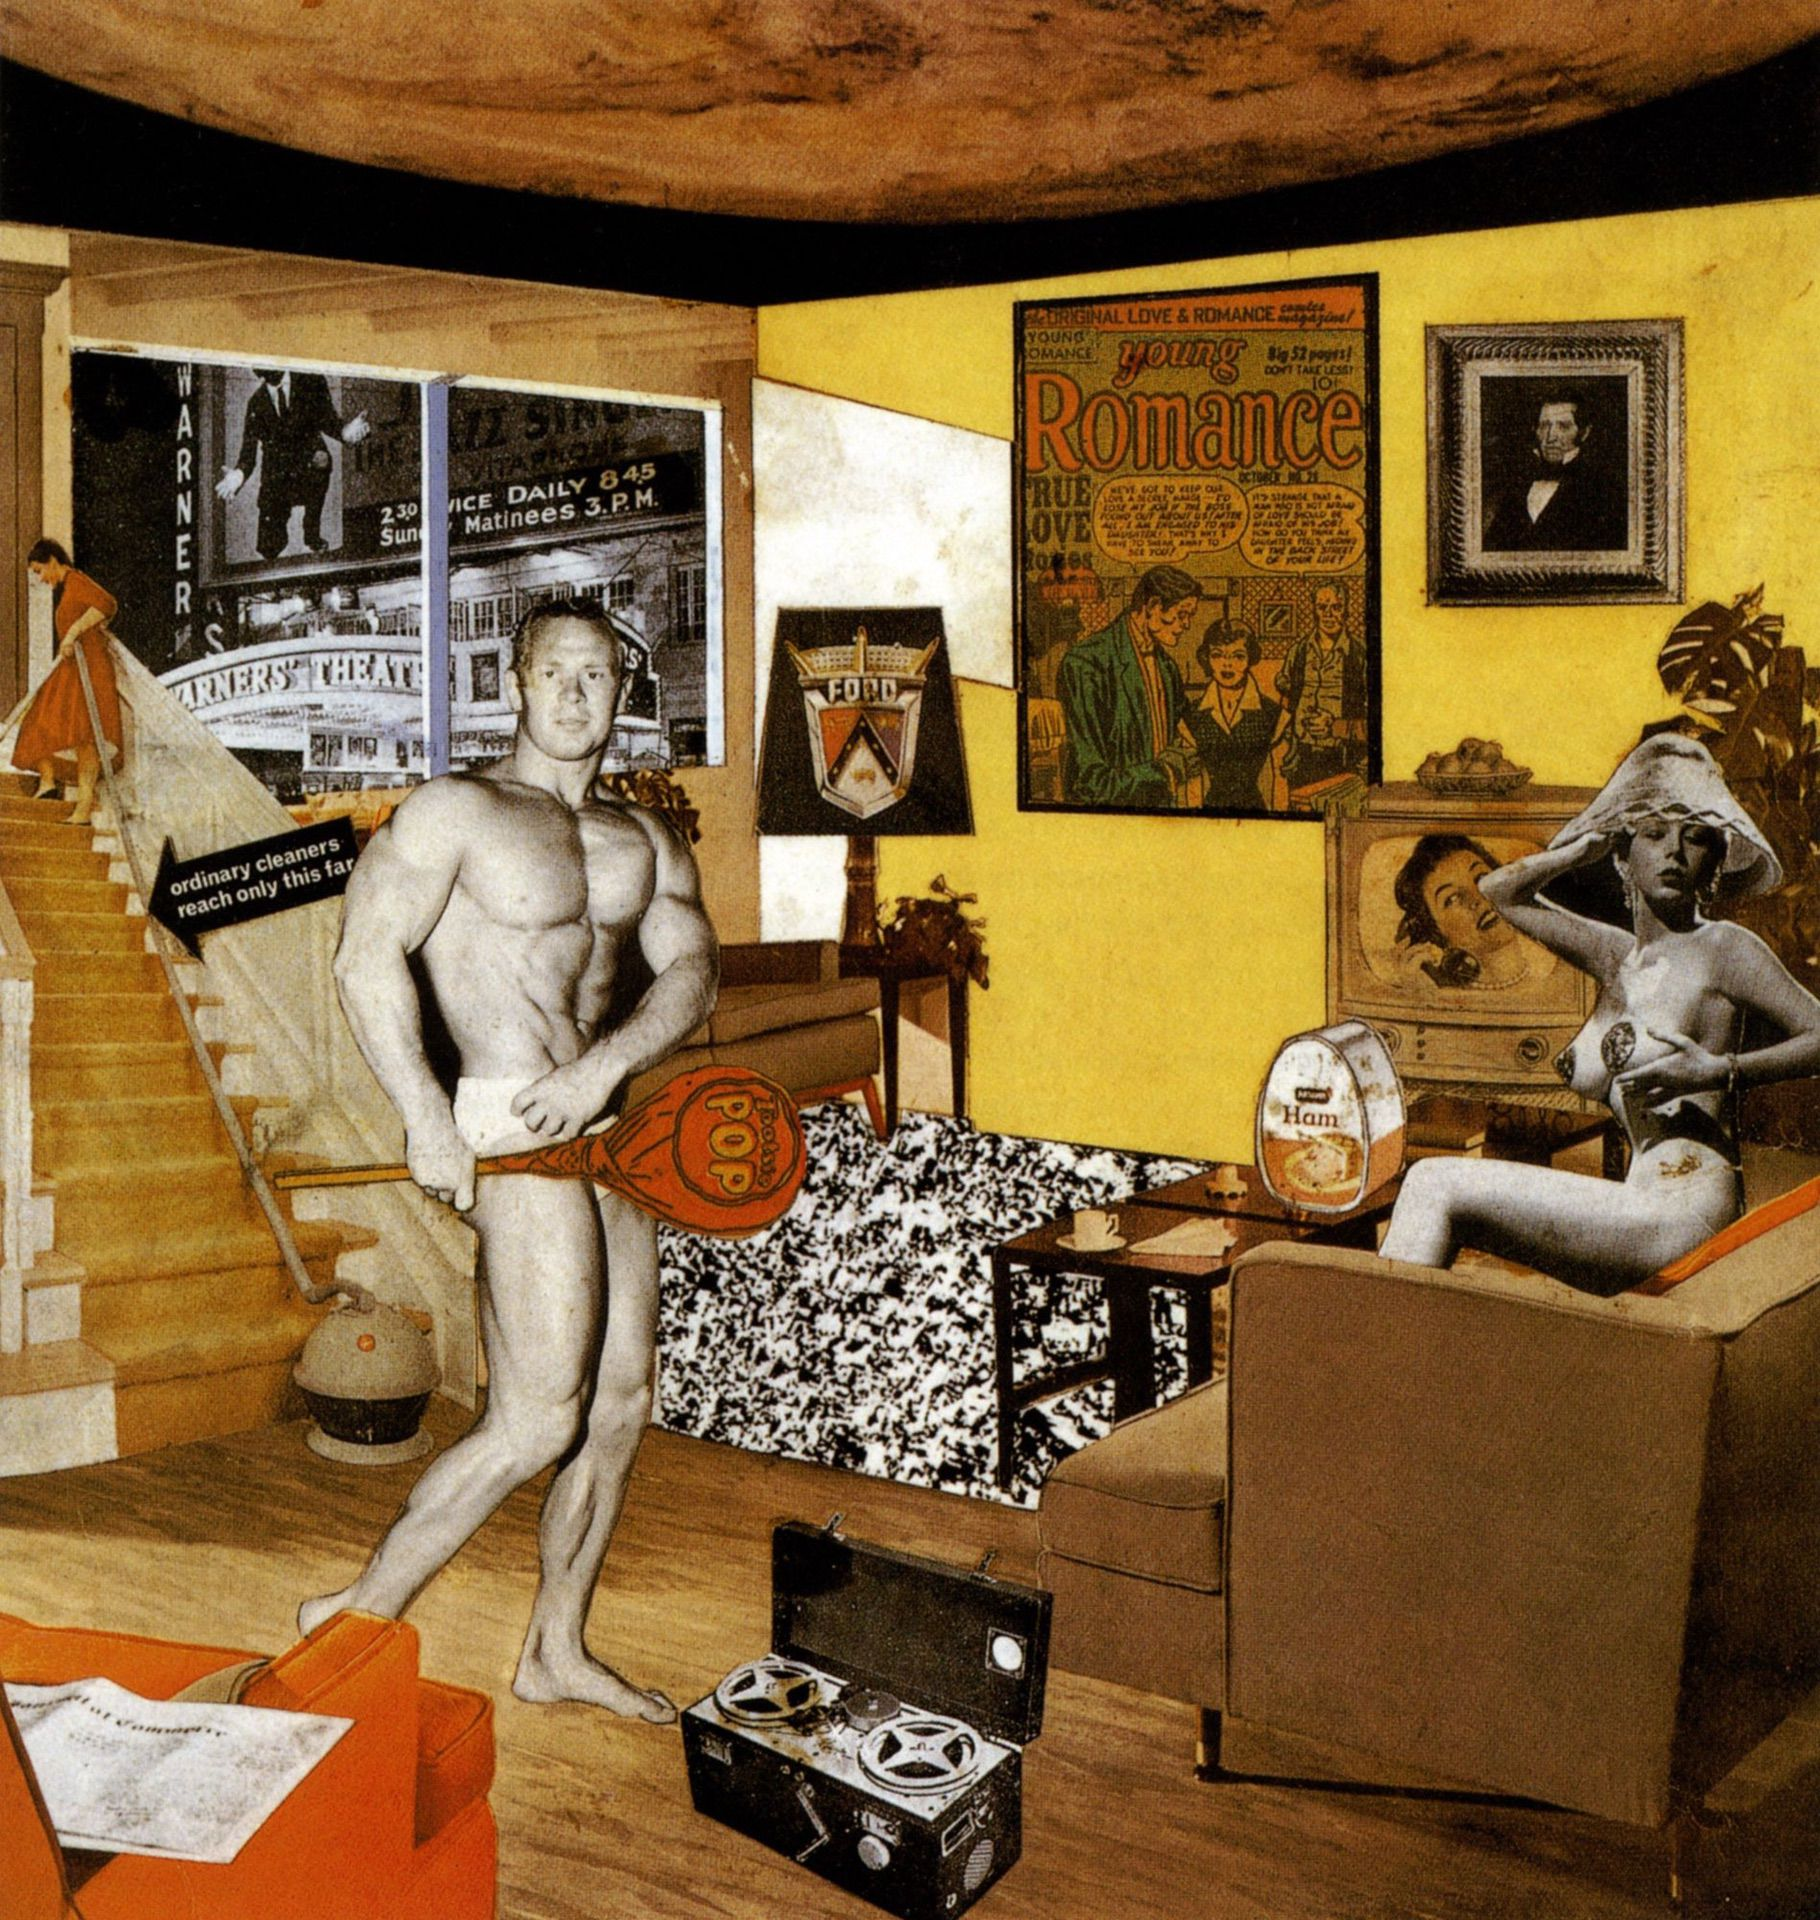 Just what is it that makes today's homes so different, so appealing? (1956) by Richard Hamilton - Pako Campo